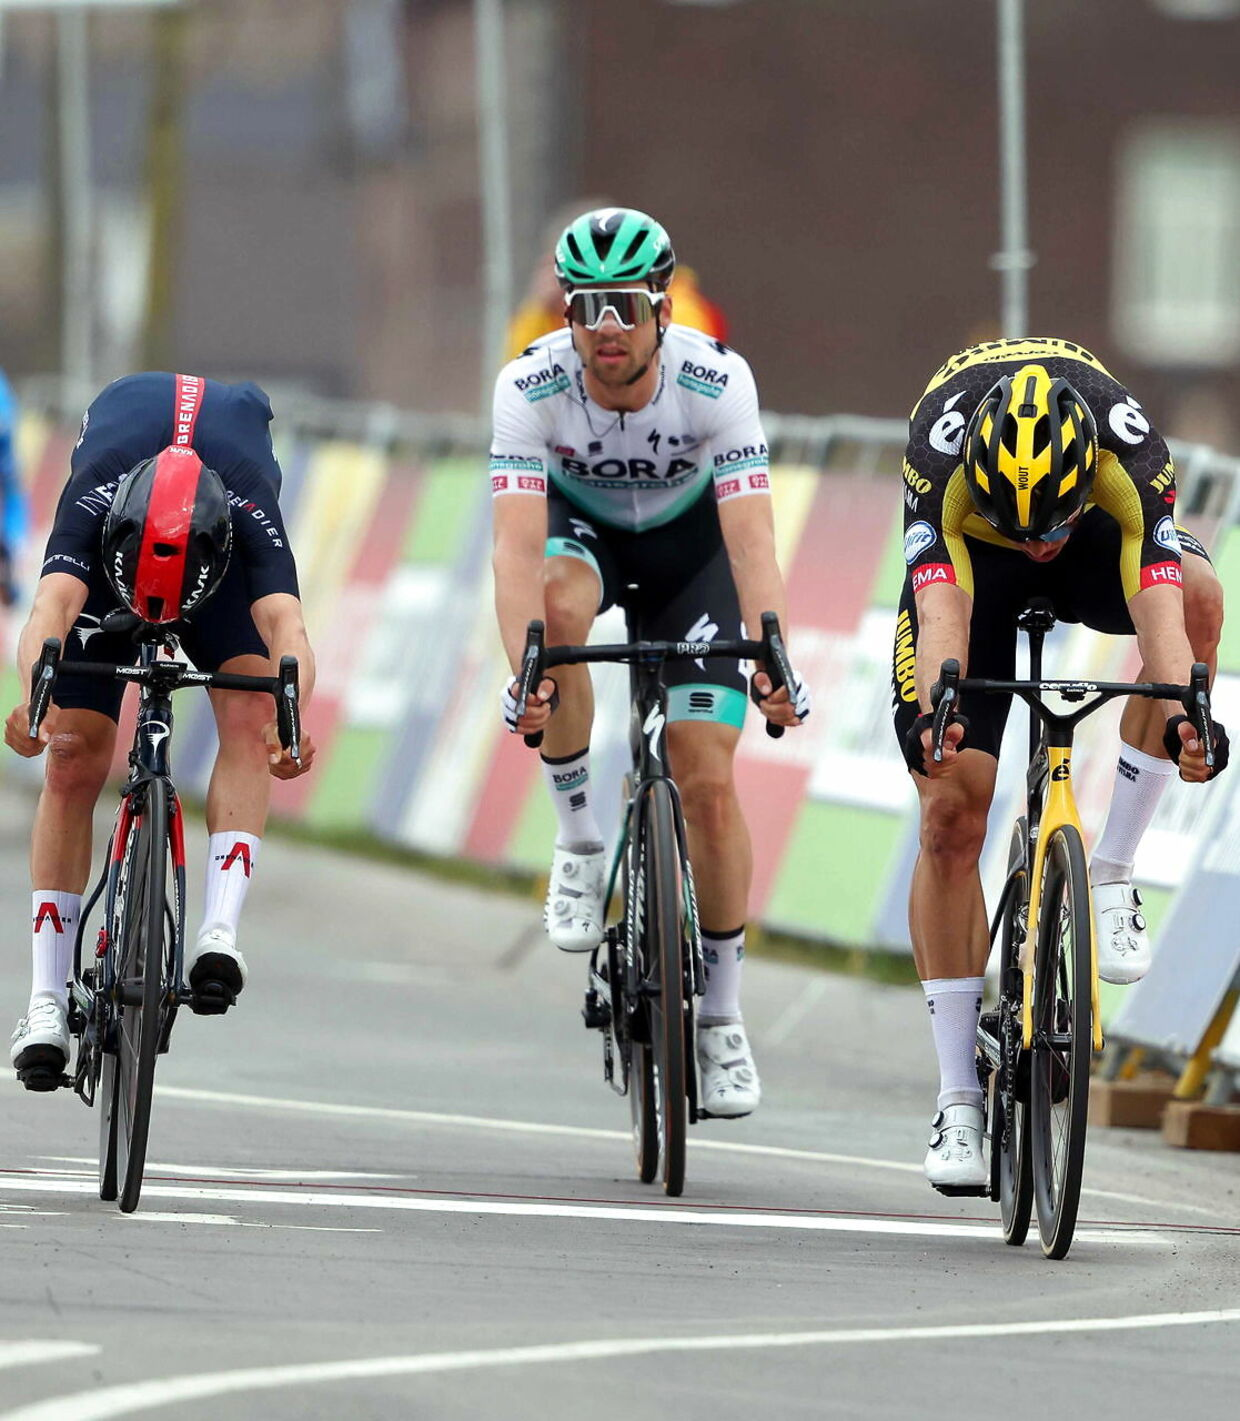 epa09143724 Belgian rider Wout Van Aert (R) of Team Jumbo-Visma crosses the finish line to win the Amstel Gold Race over 218.6km in Valkenburg, Netherlands, 18 April 2021. Van Aert won ahead of second placed British rider Thomas Pidcock (L) of the Ineos Grenadiers team and third placed German rider Maximilian Schachmann (C) of the Bora - Hansgrohe team. EPA/Marcel Van Hoorn